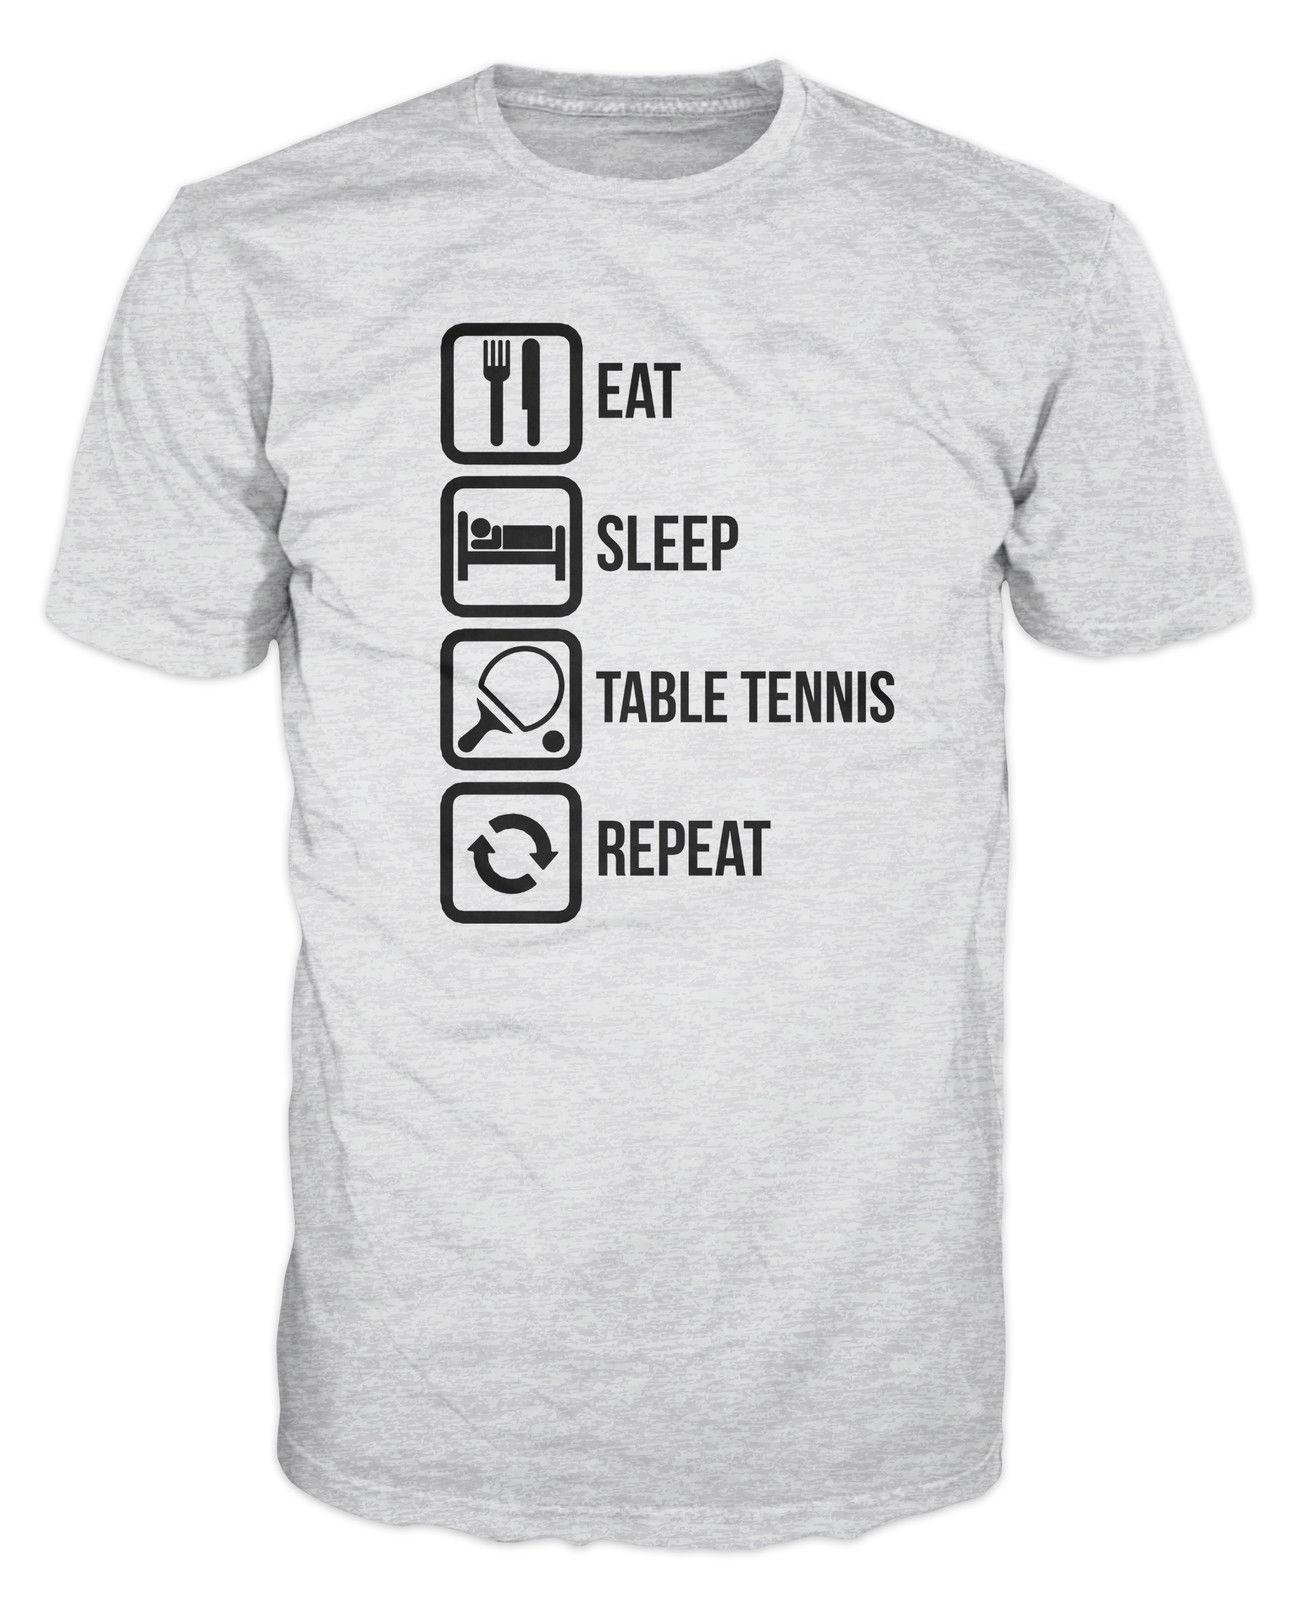 8a93a433 Eat Sleep Table Tennis Repeat Funny T ShirtFunny Casual Tee Shirt Design Tees  From Luckytshirt, $12.96| DHgate.Com